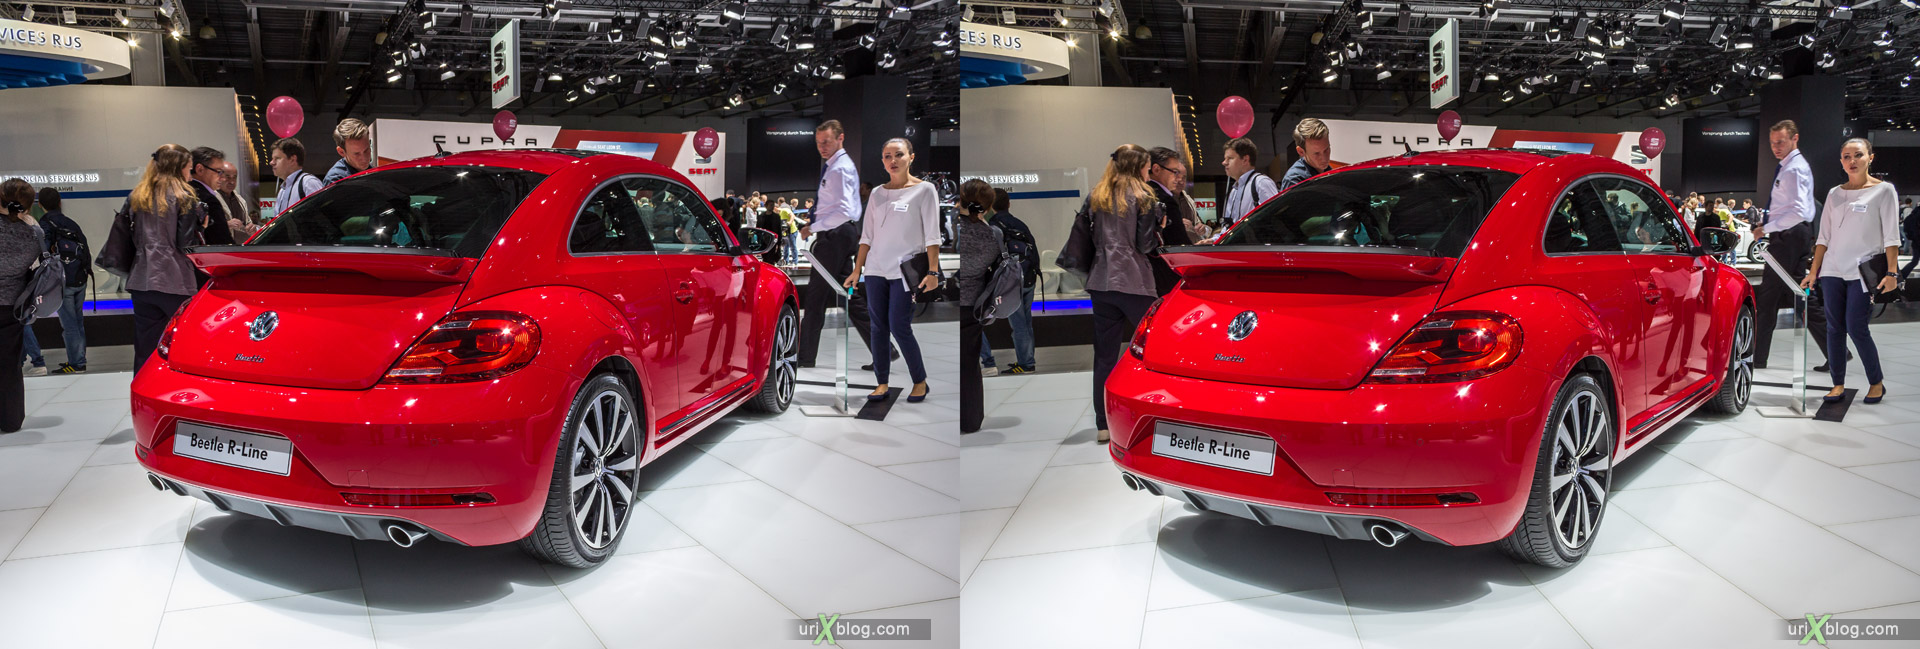 2014, Volkswagen Beetle, Moscow International Automobile Salon, MIAS, Crocus Expo, Moscow, Russia, augest, 3D, stereo pair, cross-eyed, crossview, cross view stereo pair, stereoscopic